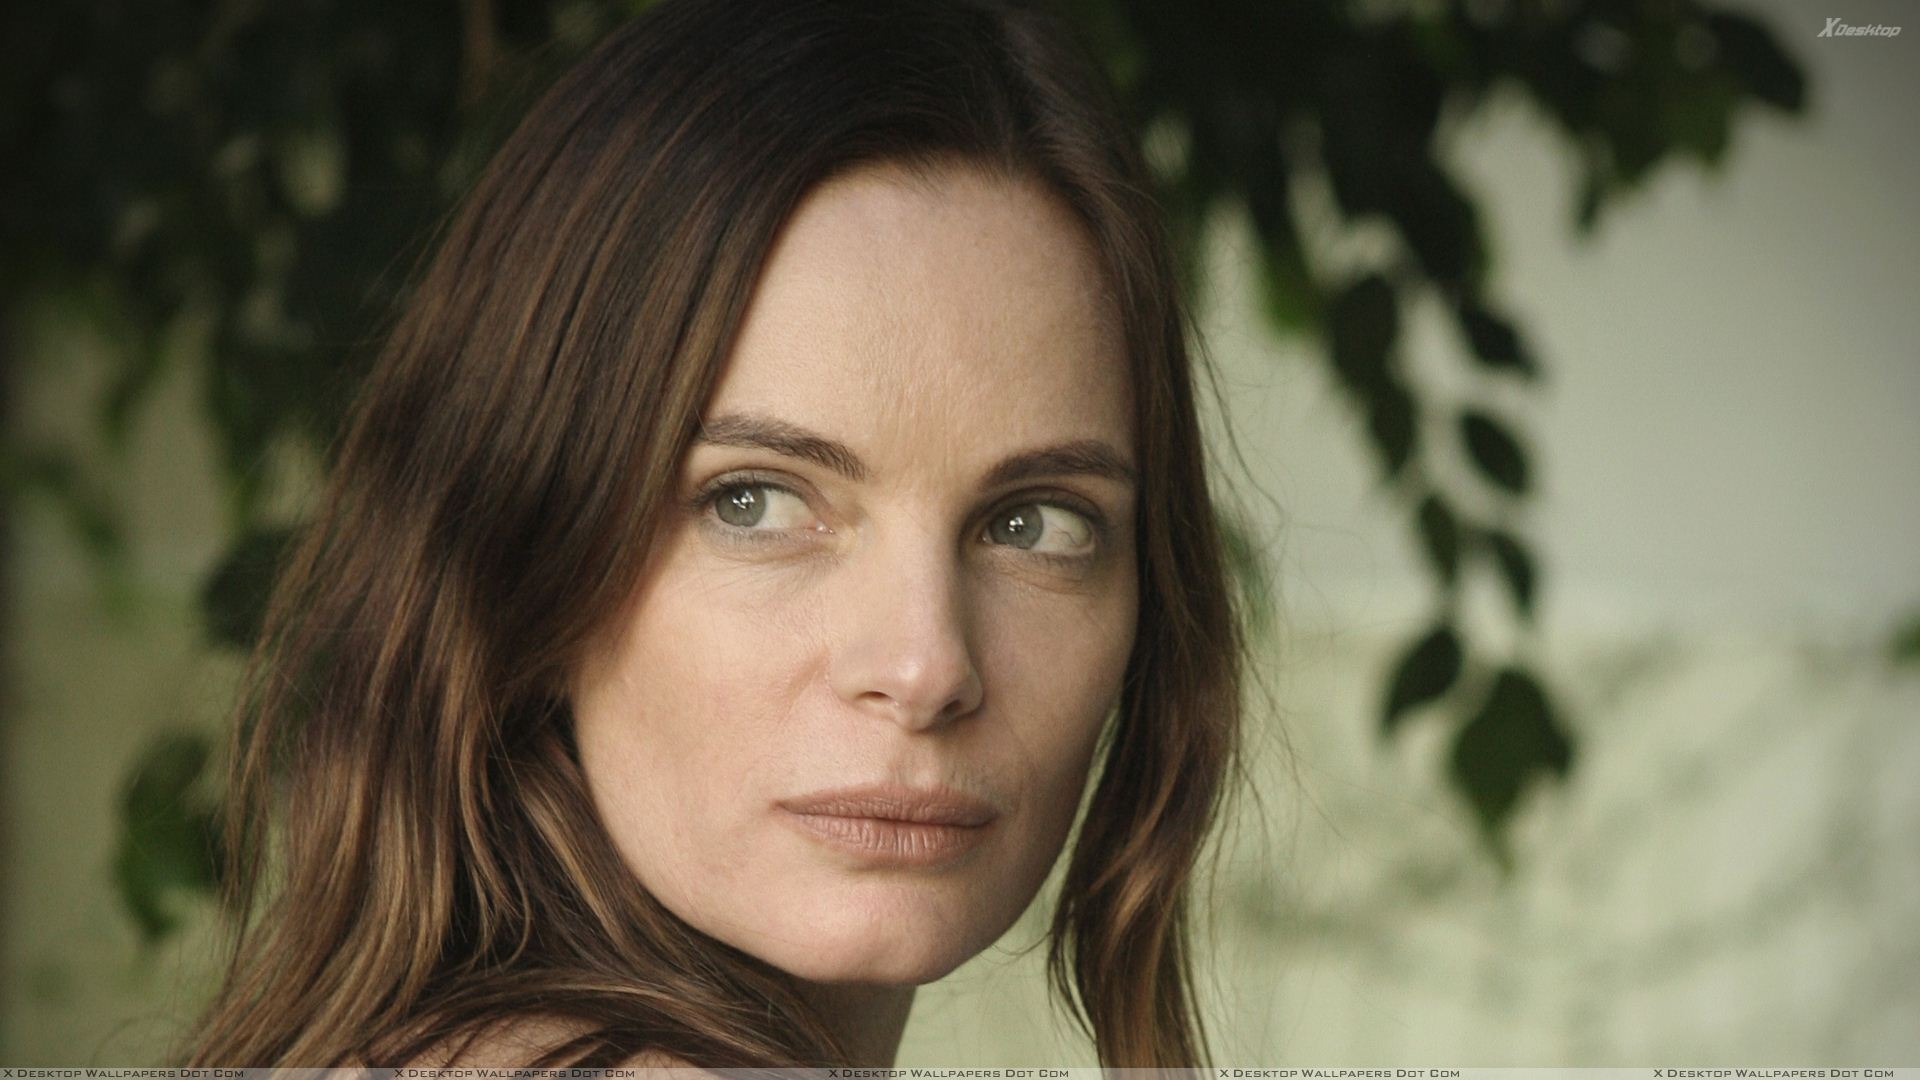 Gabrielle Anwar Wallpapers Photos Images in HD 1920x1080